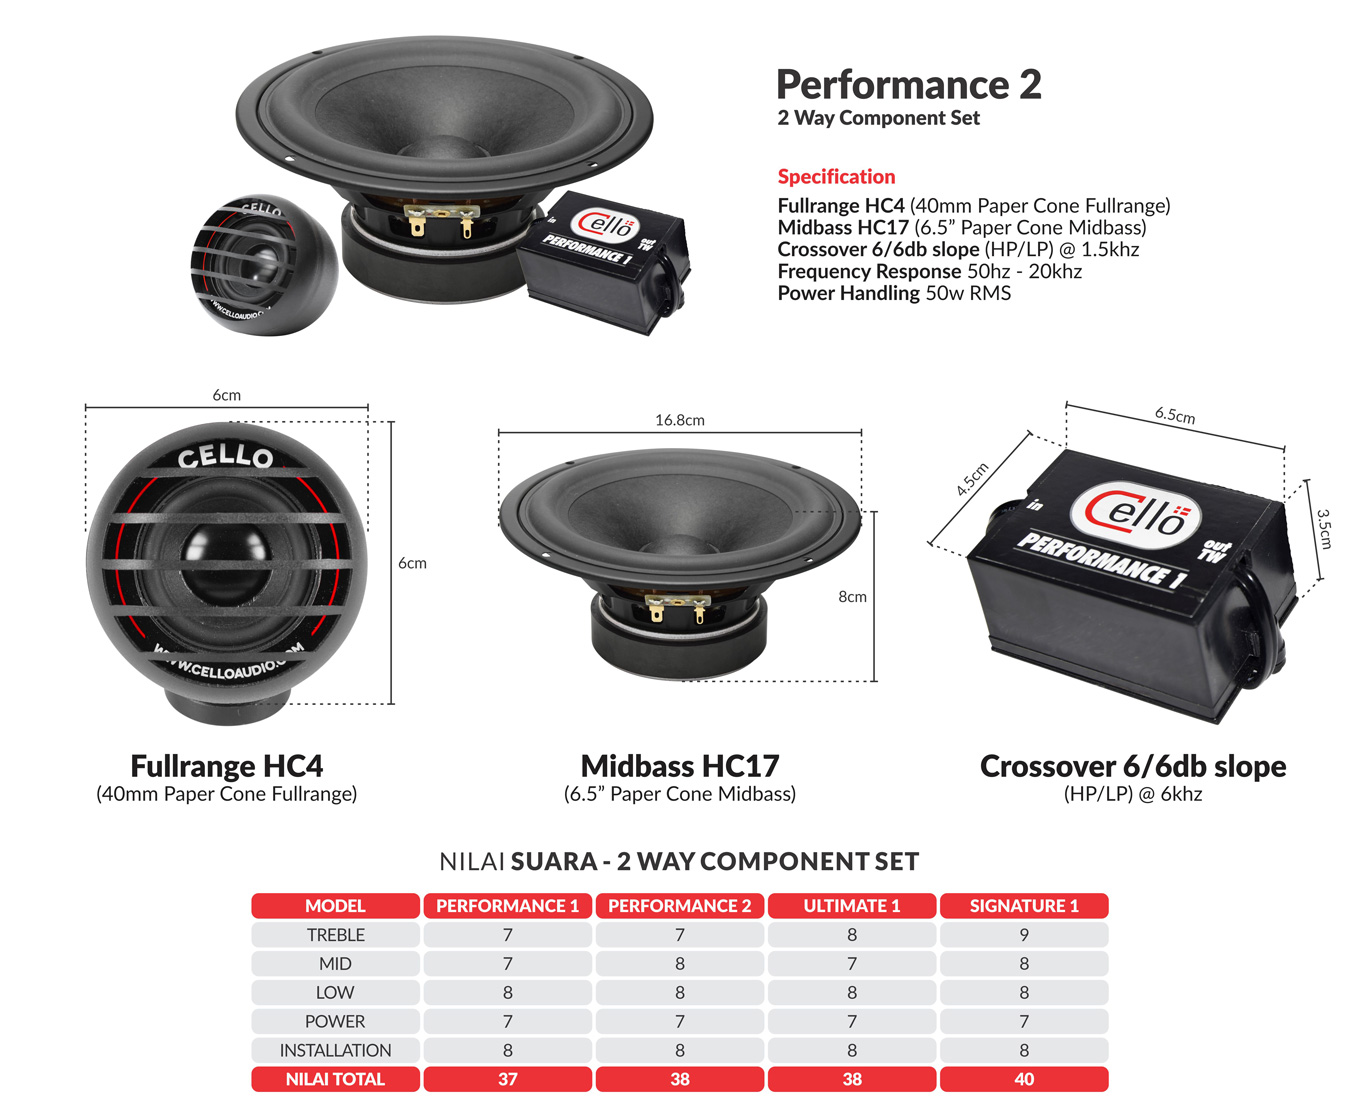 performance2-specification